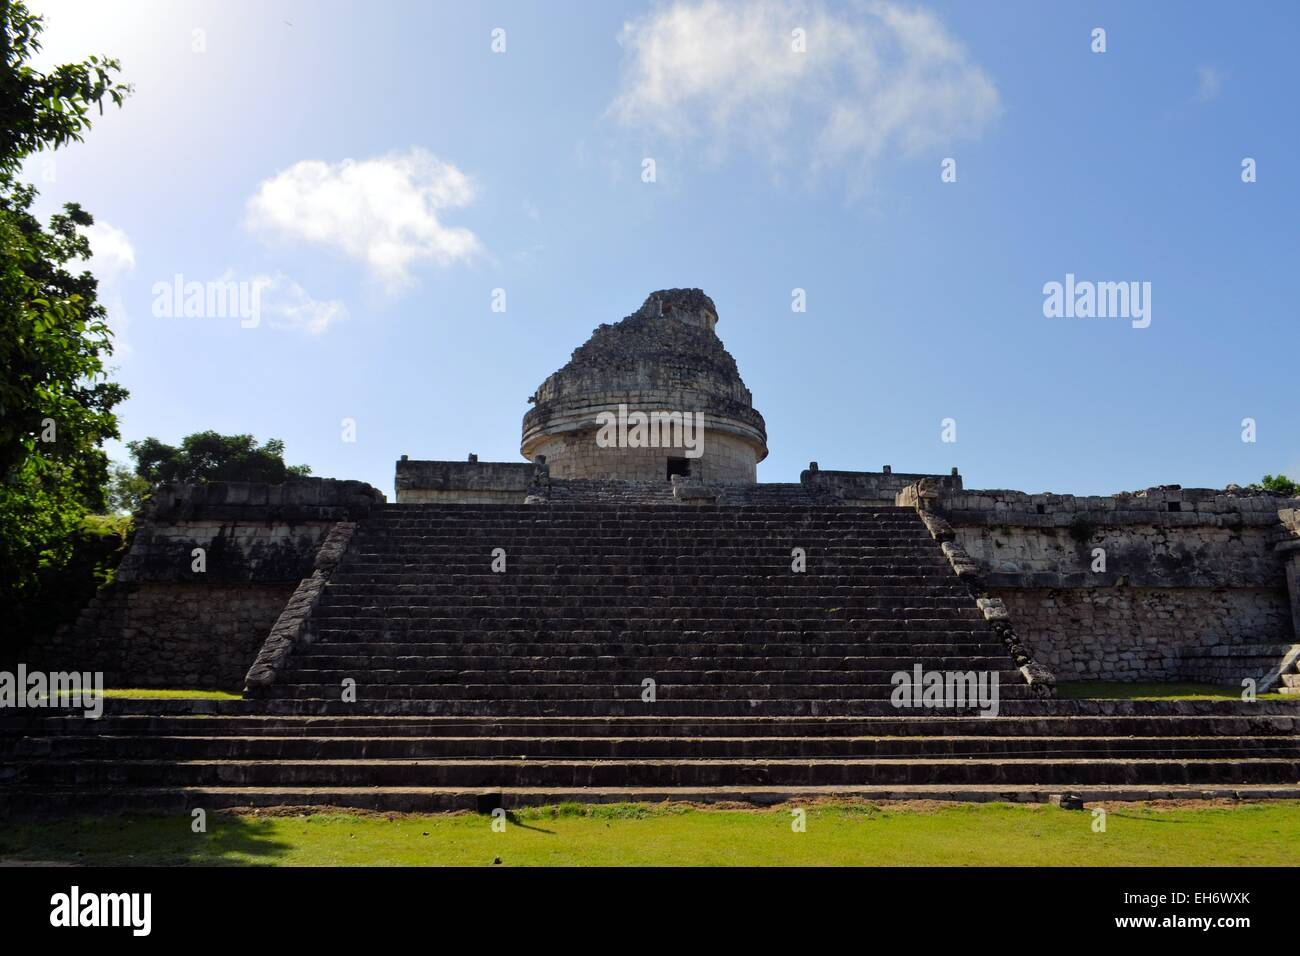 Mayan Observatory at Chichen Itza, Mexico, Yucatan - Stock Image